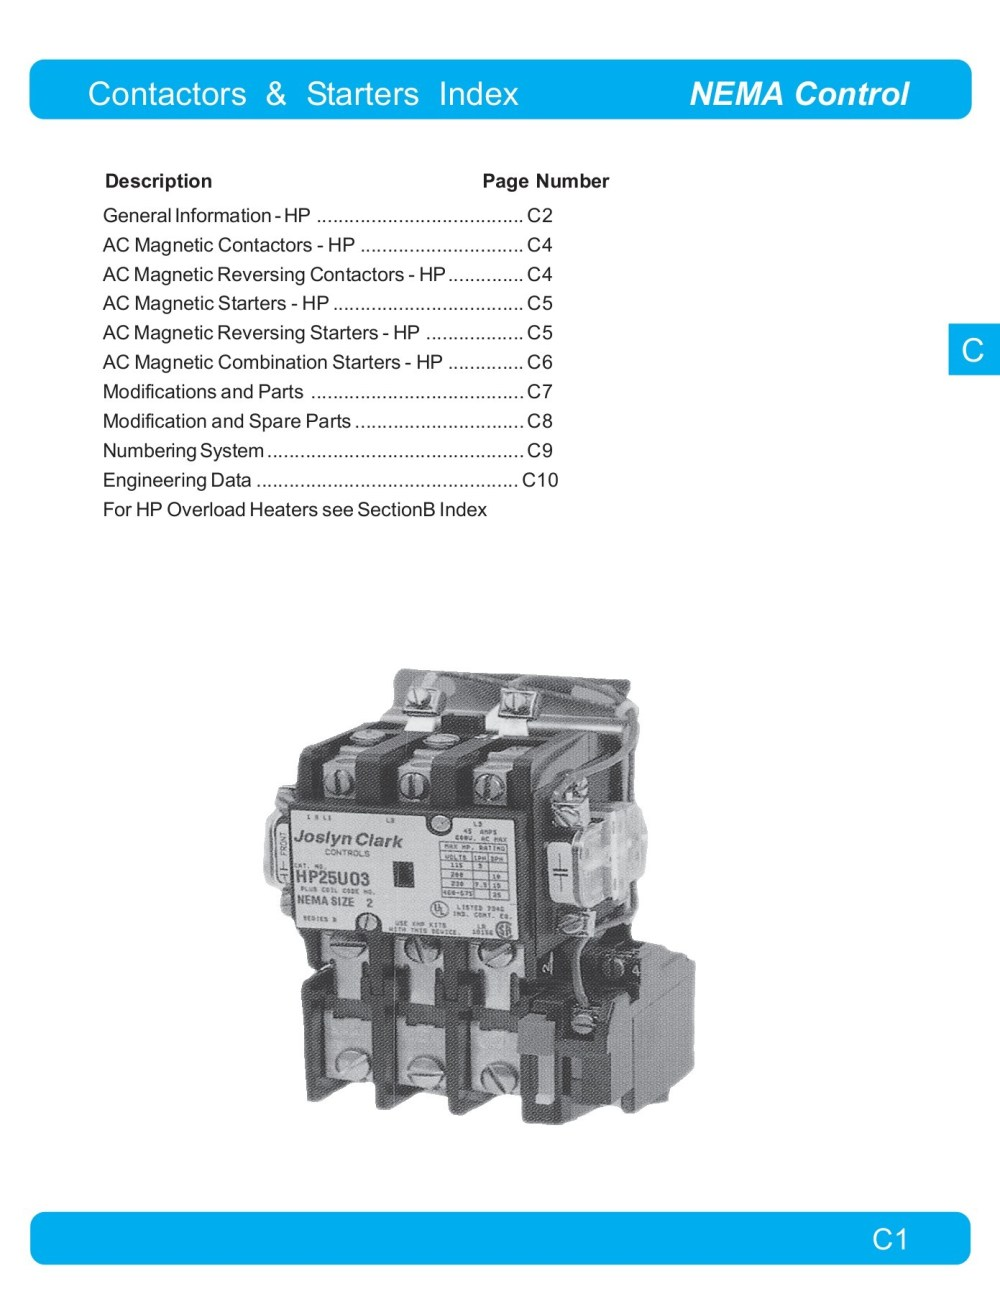 medium resolution of contactors starters index nema control pages 1 14 text version fliphtml5